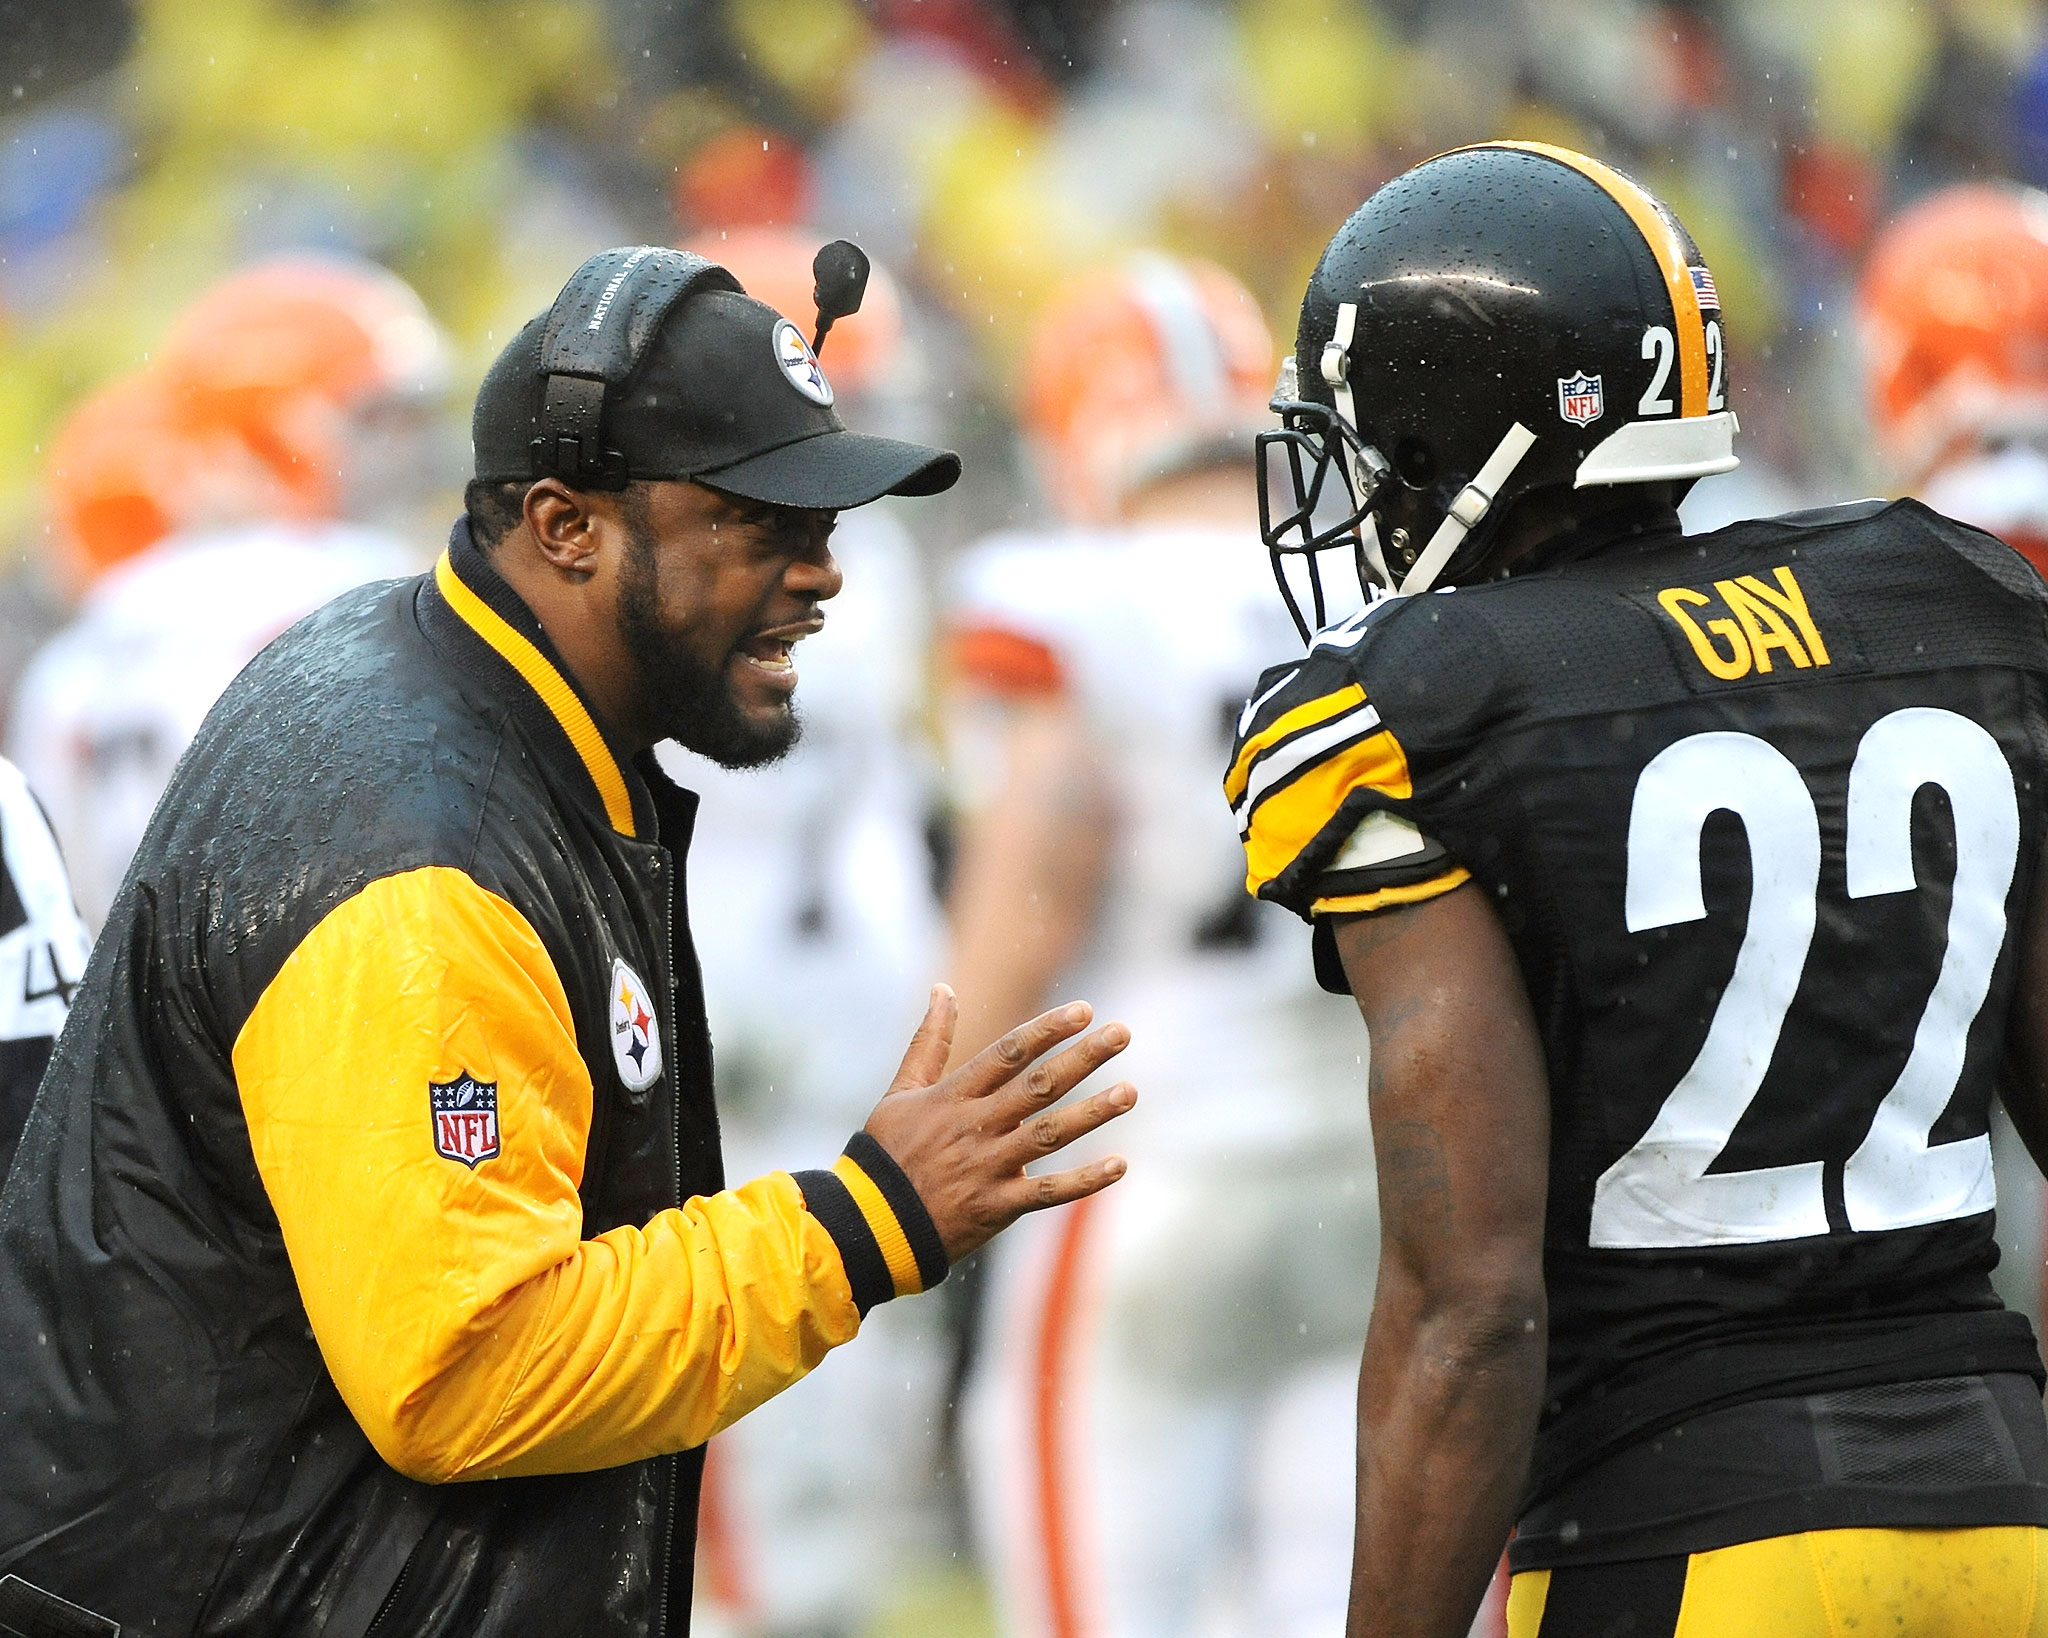 PITTSBURGH, PA - DECEMBER 29:  Head coach Mike Tomlin of the Pittsburgh Steelers talks to cornerback William Gay #22 during a game against the Cleveland Browns at Heinz Field on December 29, 2013 in Pittsburgh, Pennsylvania.  The Steelers defeated the Bro